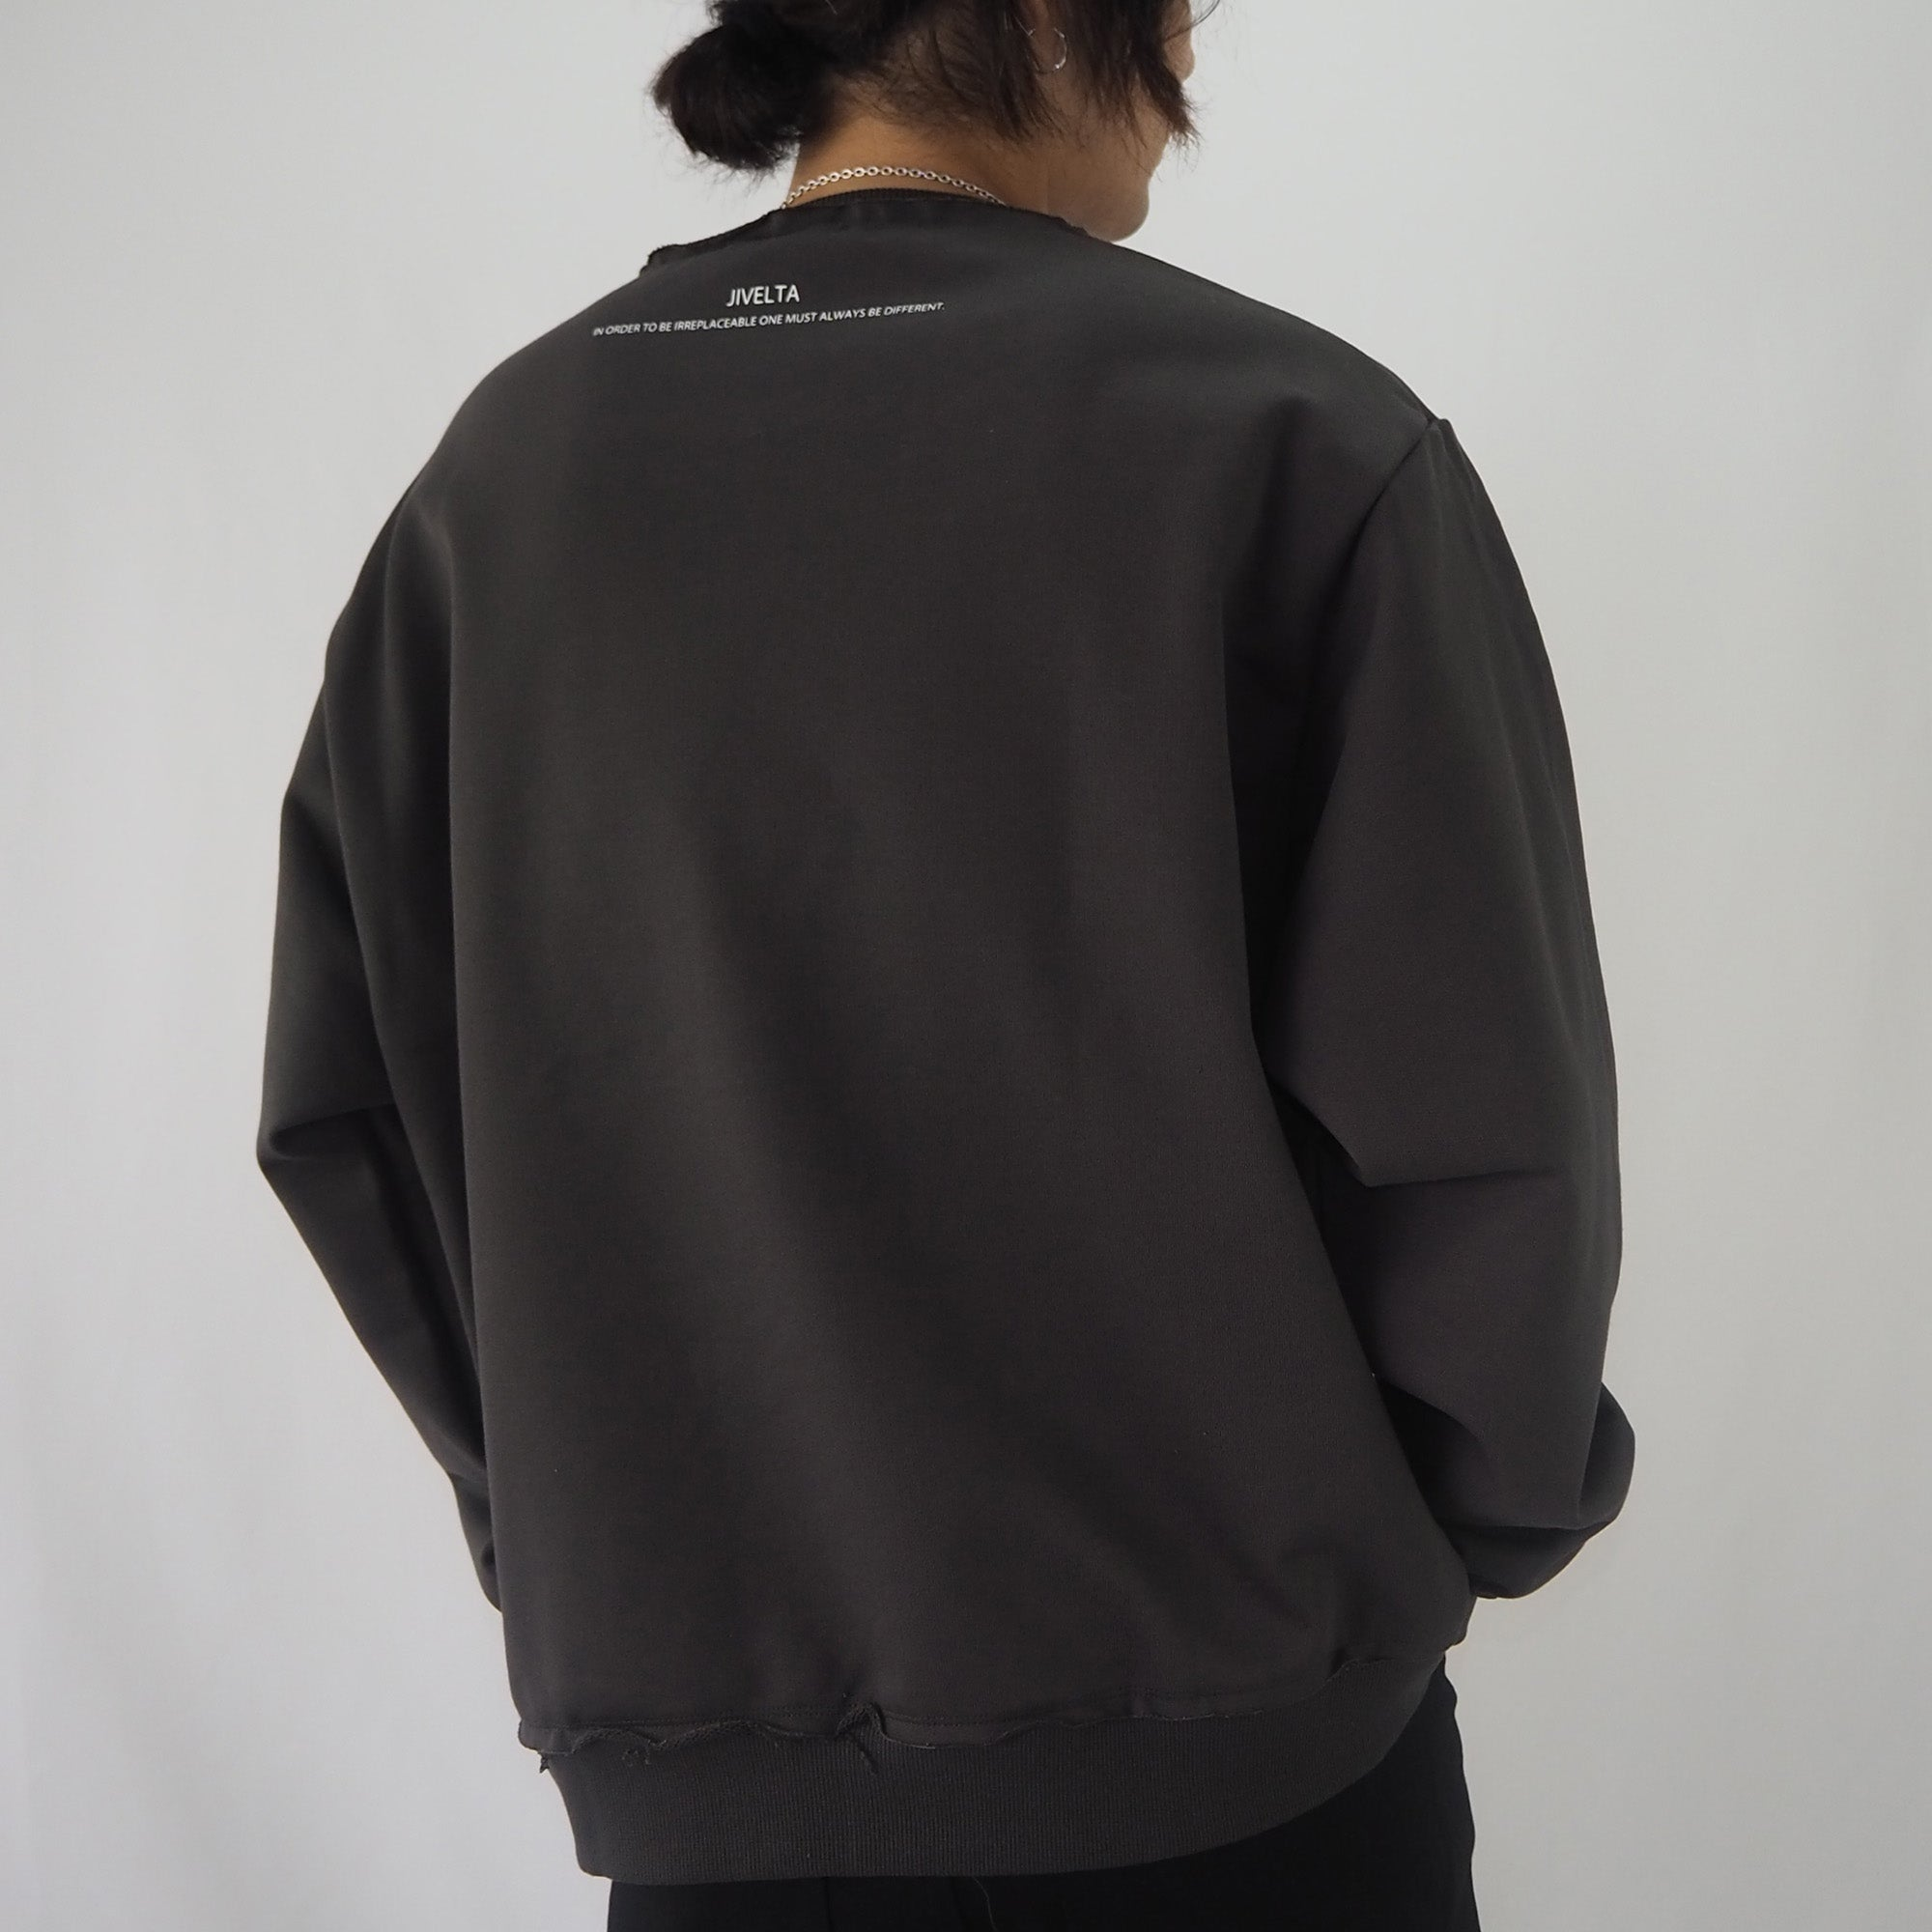 L/S SWEAT-A | JIVELTA 2020 SS